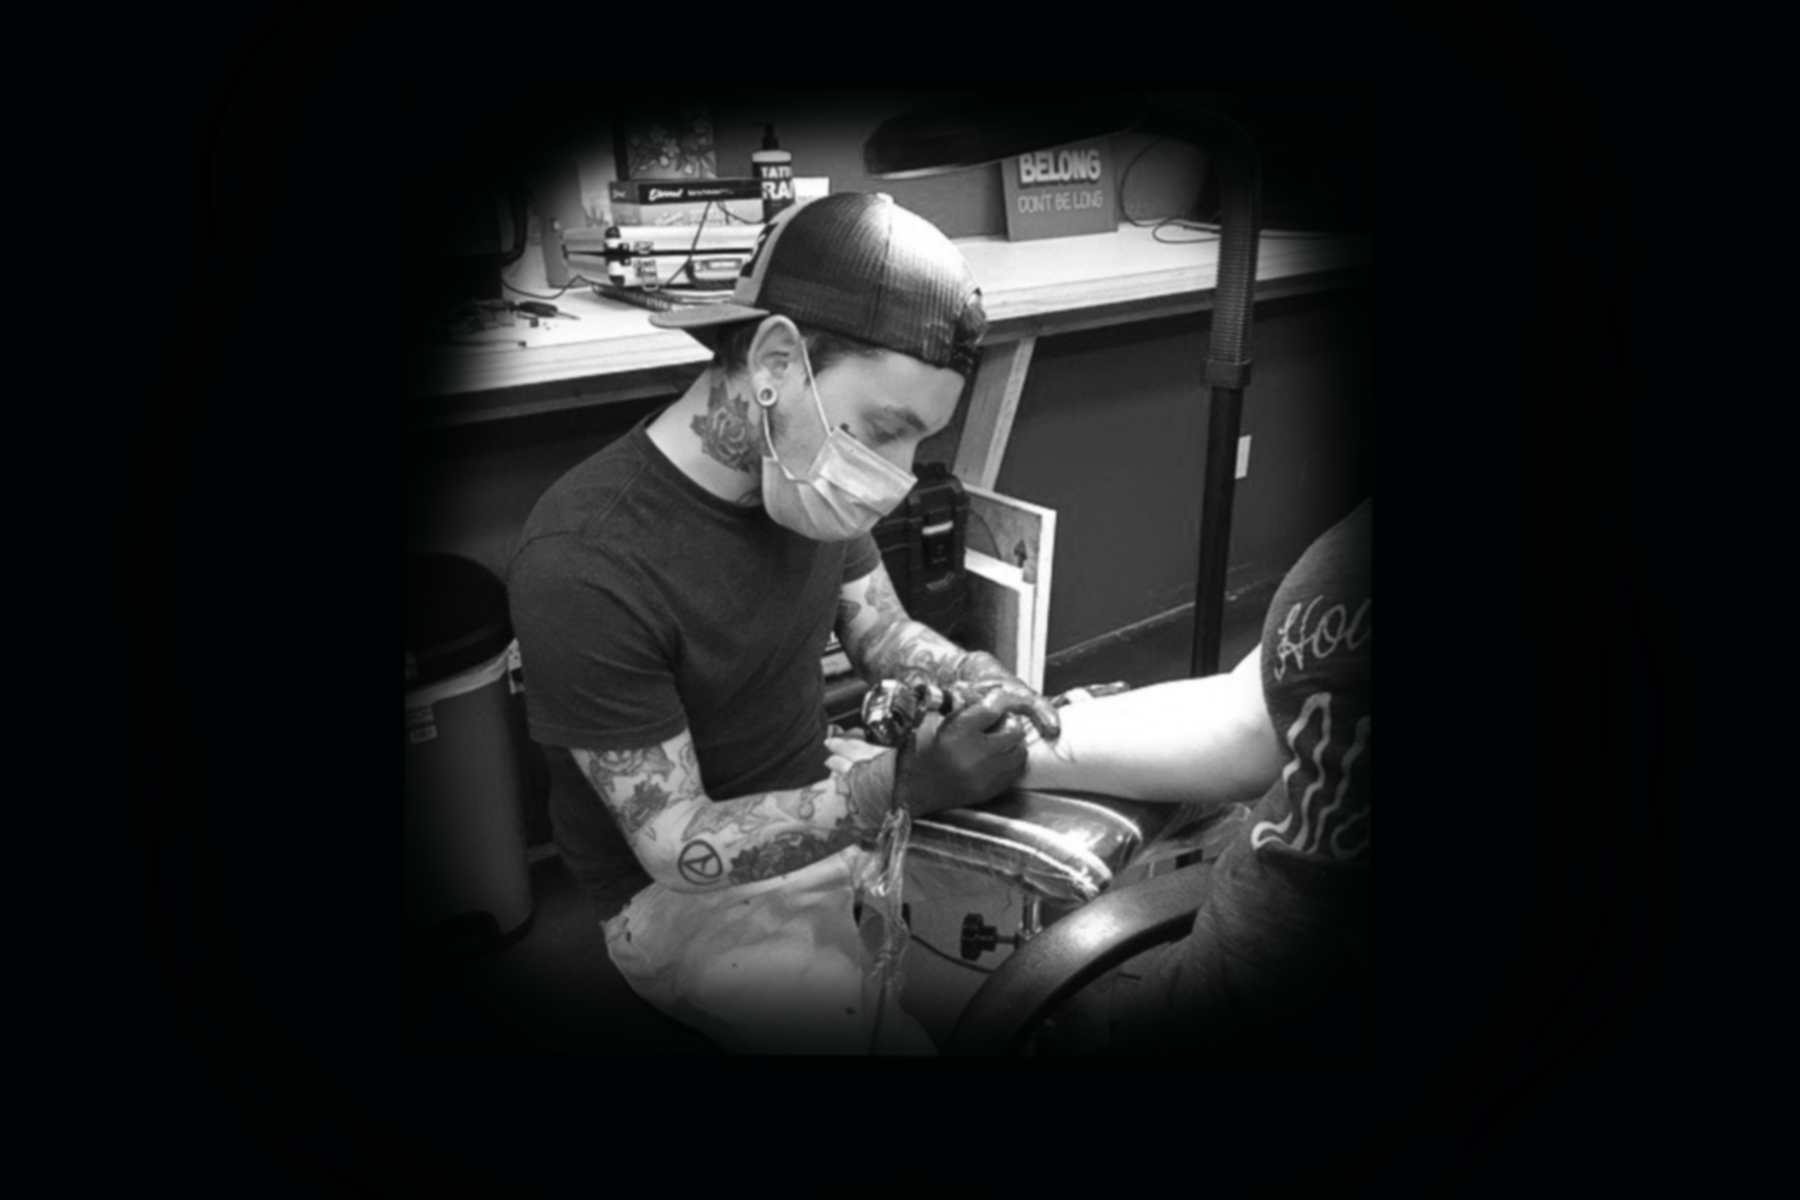 TATTOOING BY JIMMEH